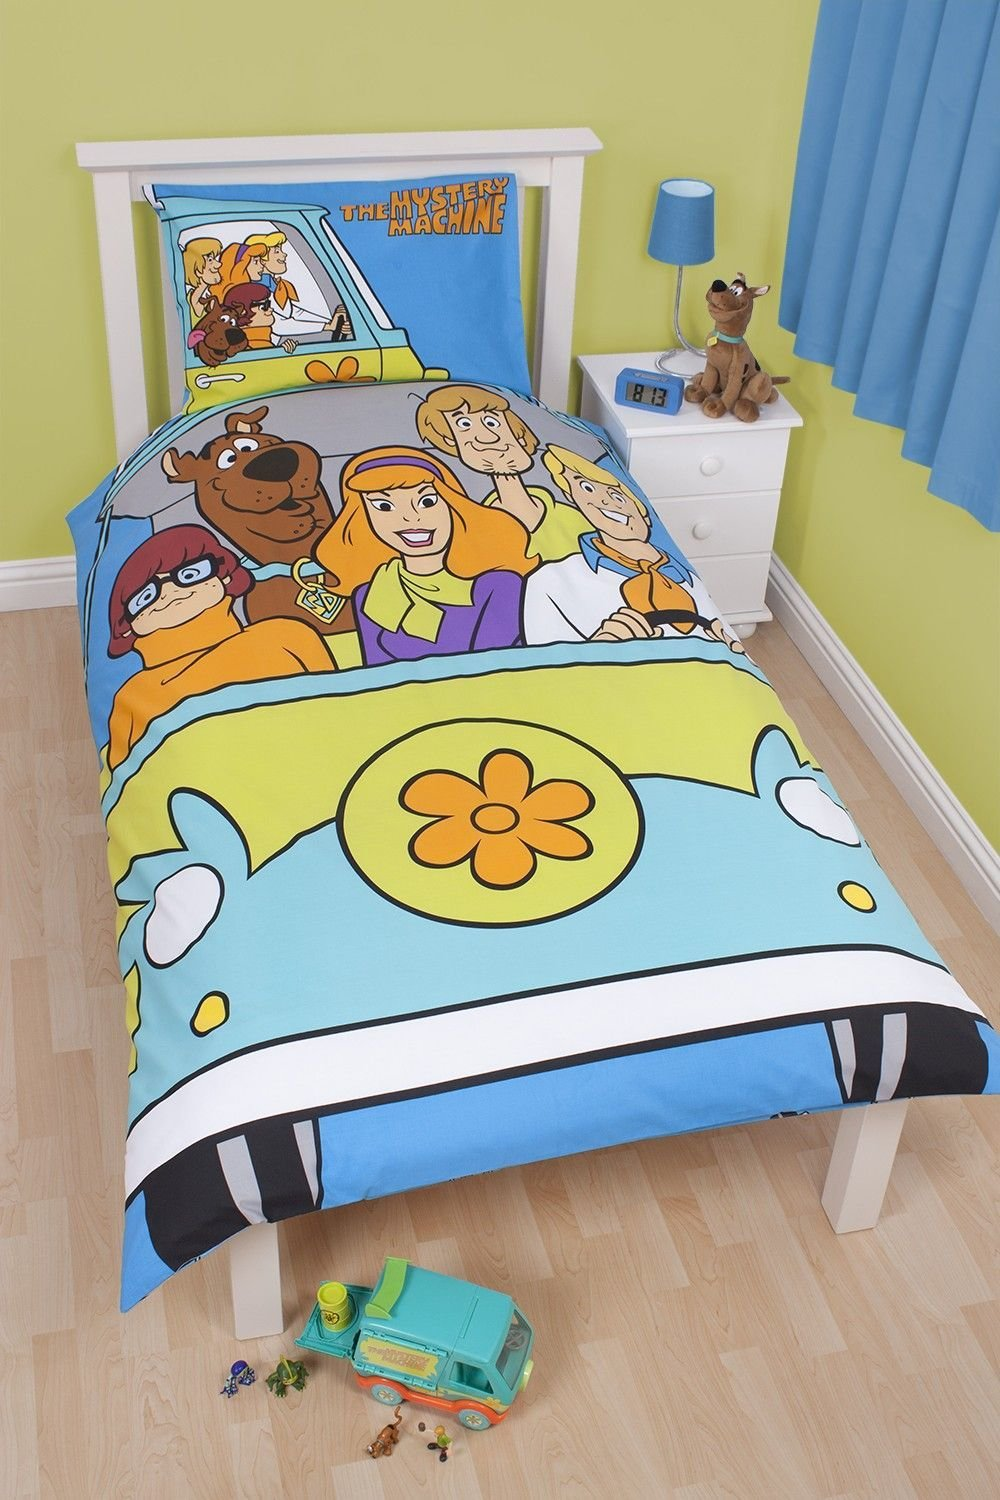 Best Scooby Doo Scooby Doo Bedding Mystery Reversible With Pictures